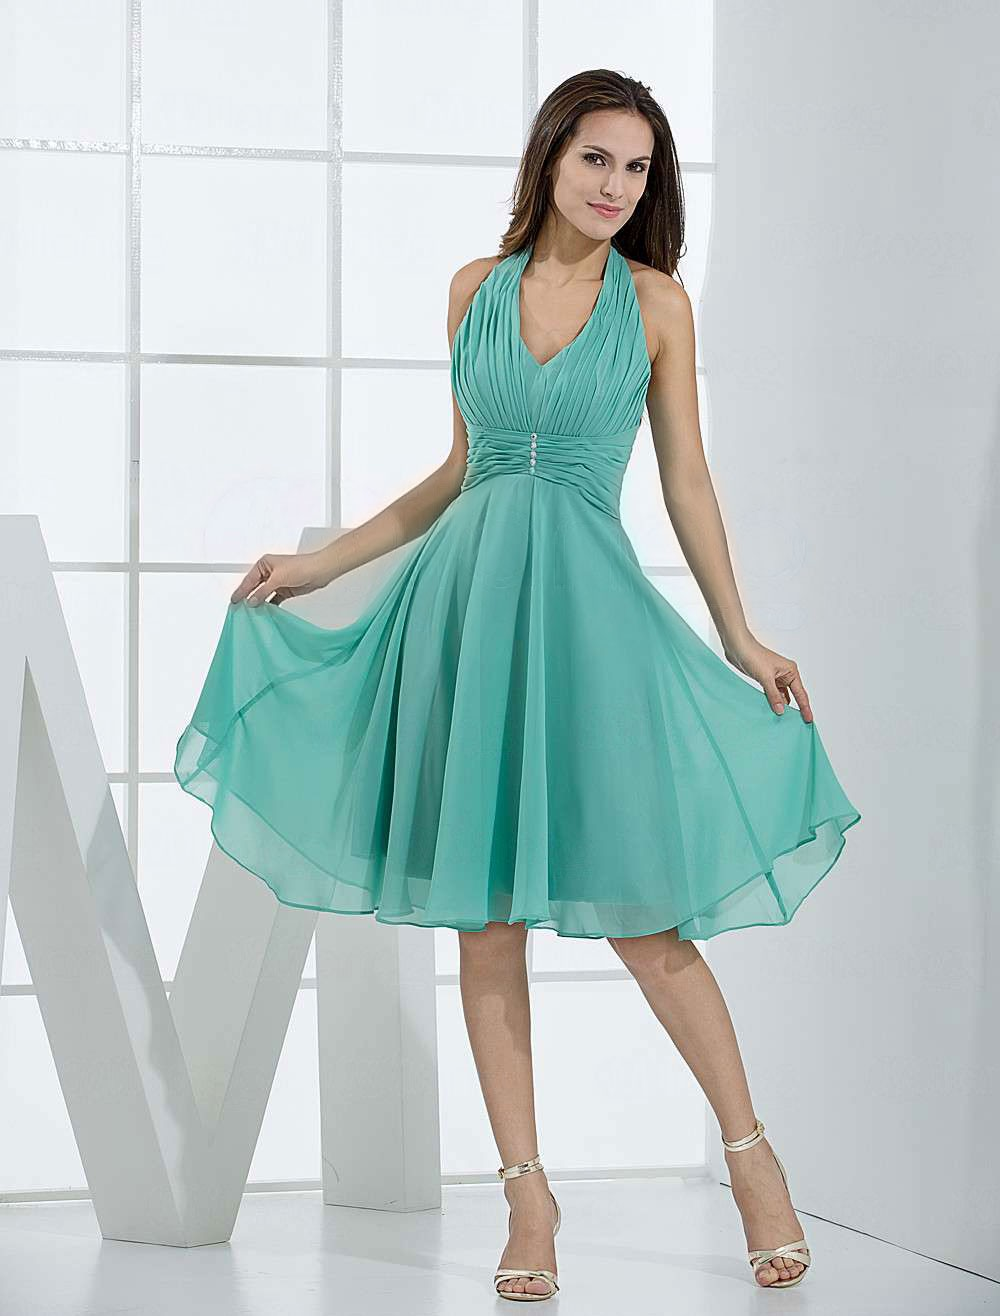 Chiffon Summer Dresses | Wedding Gallery